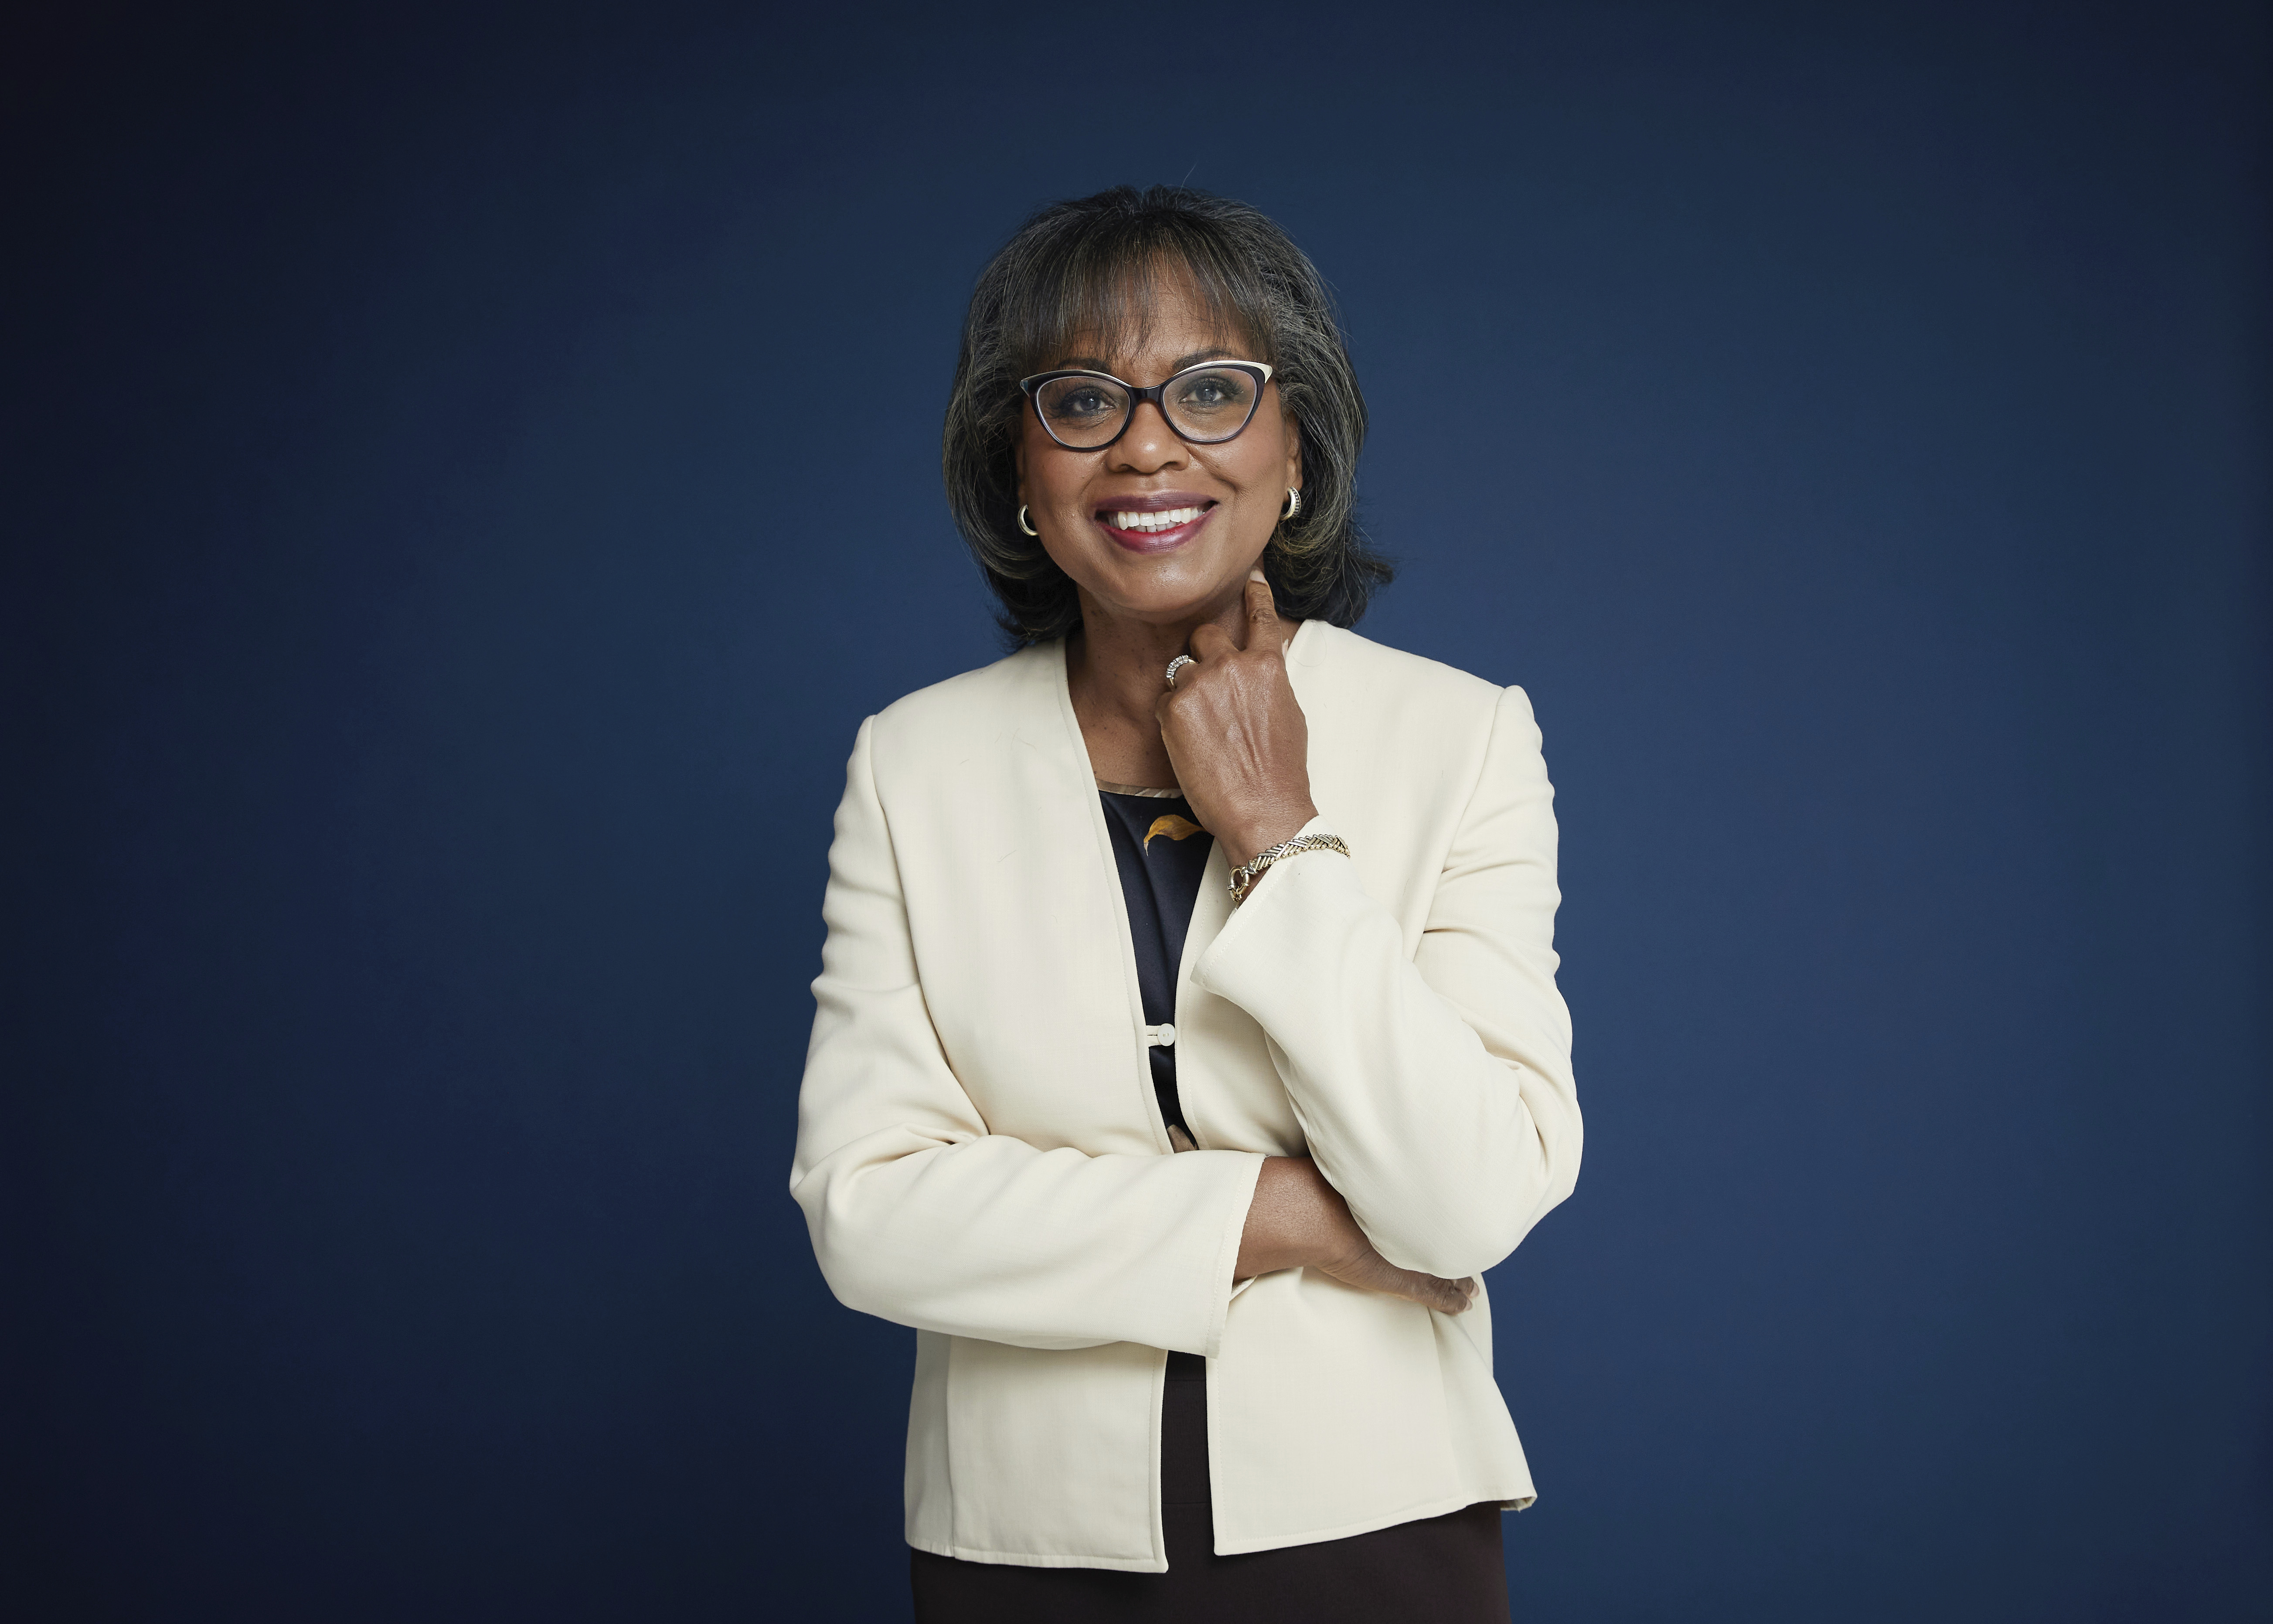 """Anita Hill in New York on Sept. 21, 2021 to promote her book, """"Believing: Our Thirty-Year Journey to End Gender Violence,"""" releasing on Sept. 28."""